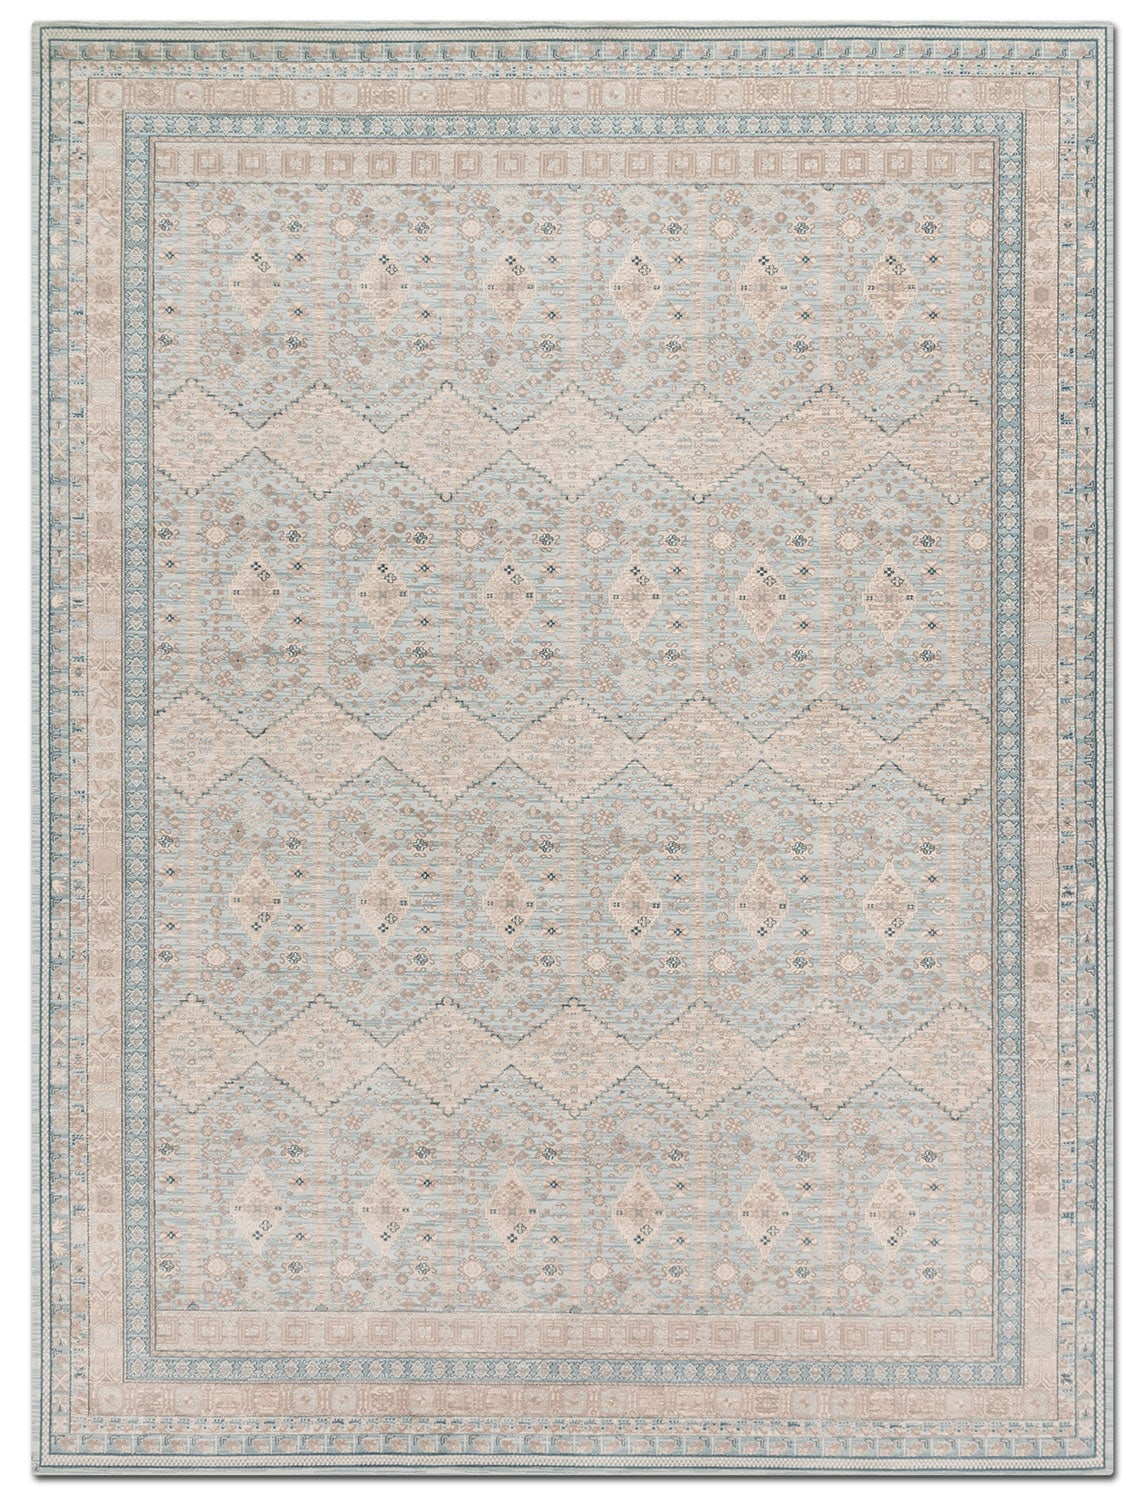 Ella Rose 4' x 6' Rug - Mist and Stone